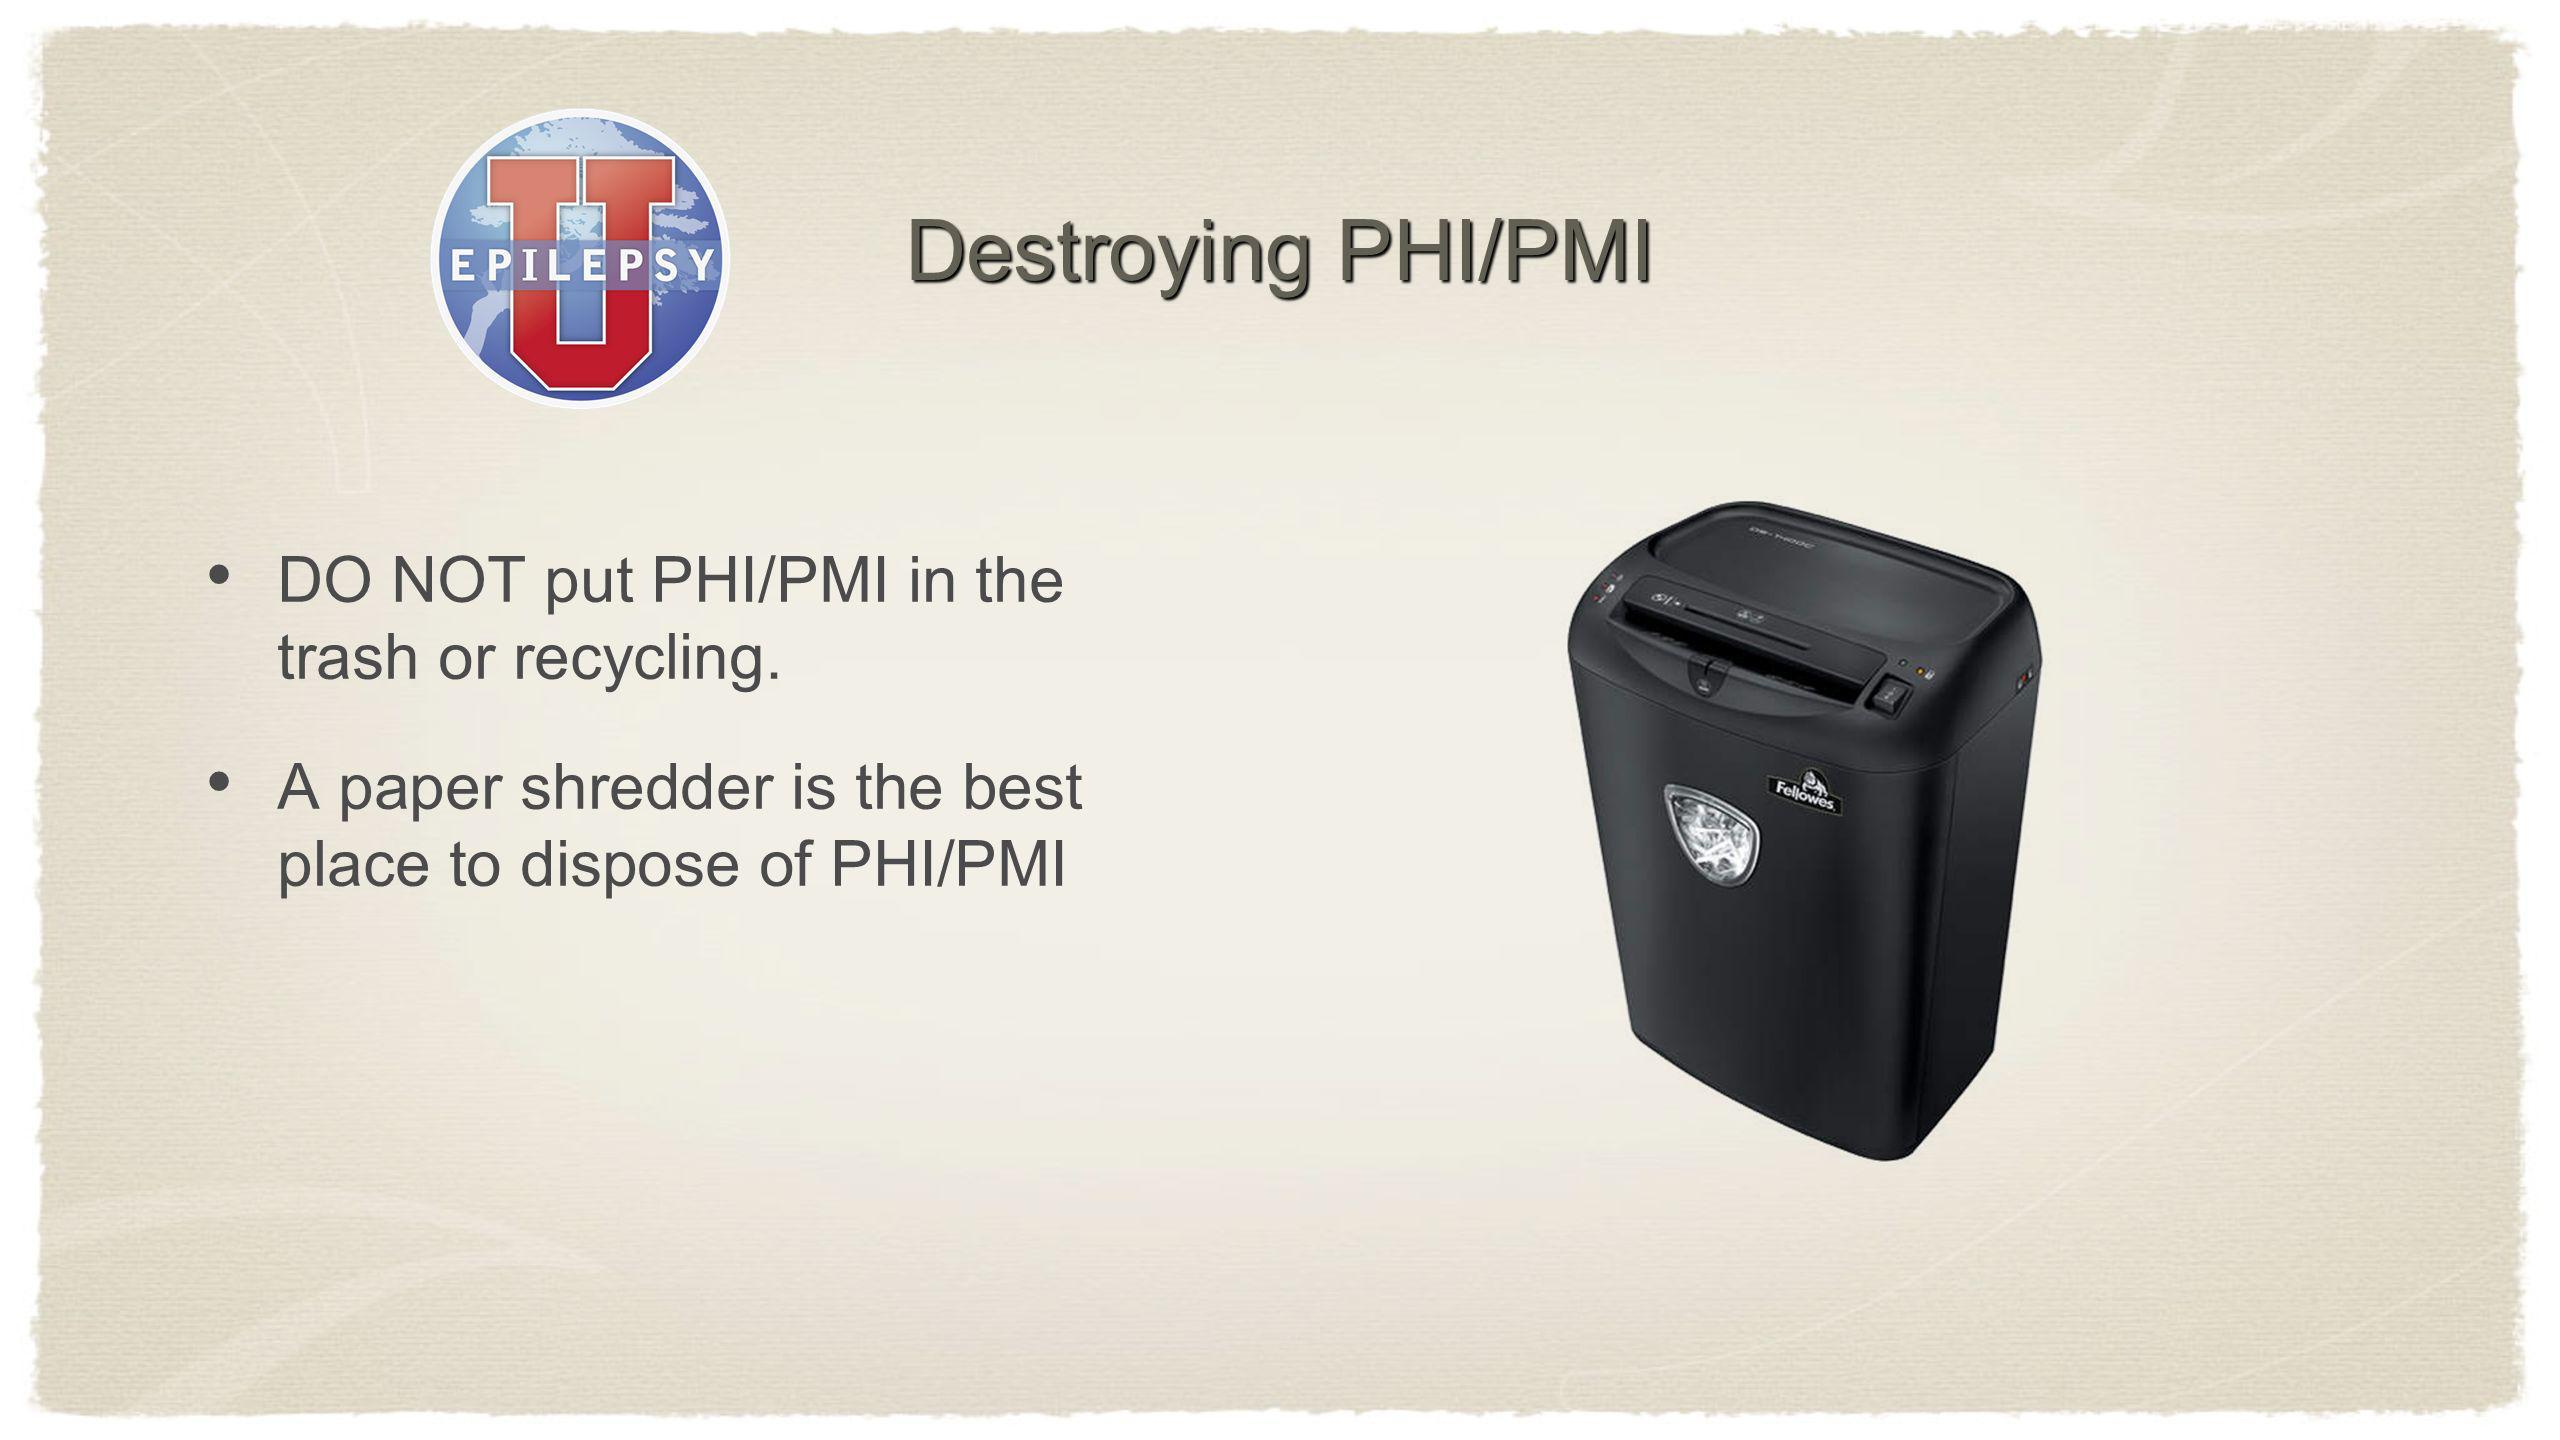 Destroying PHI/PMI DO NOT put PHI/PMI in the trash or recycling.